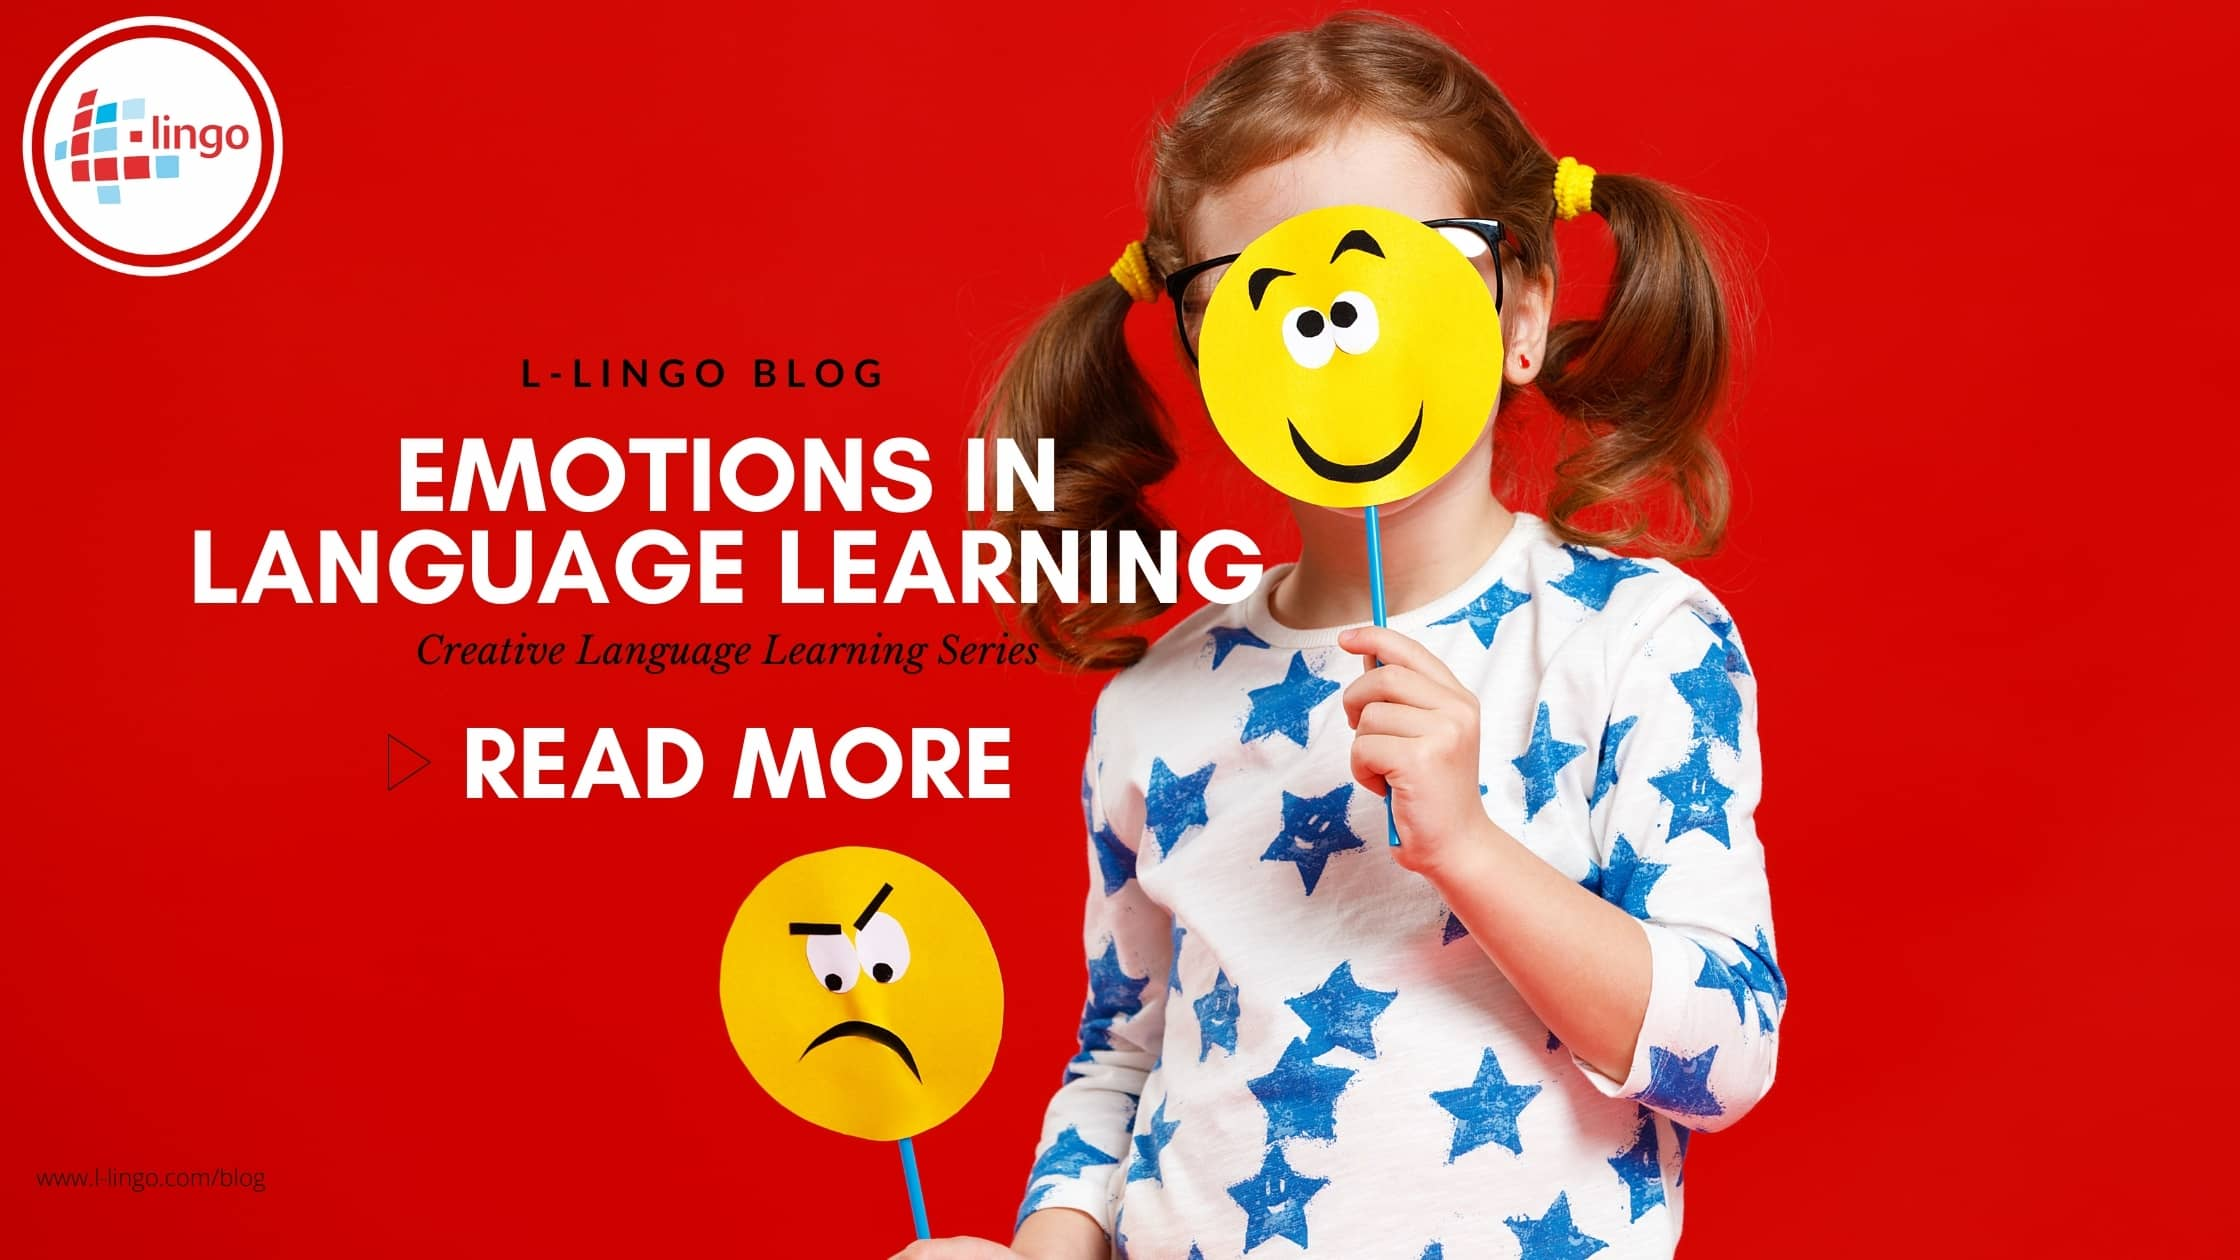 L-Lingo Emotions In Language Learning